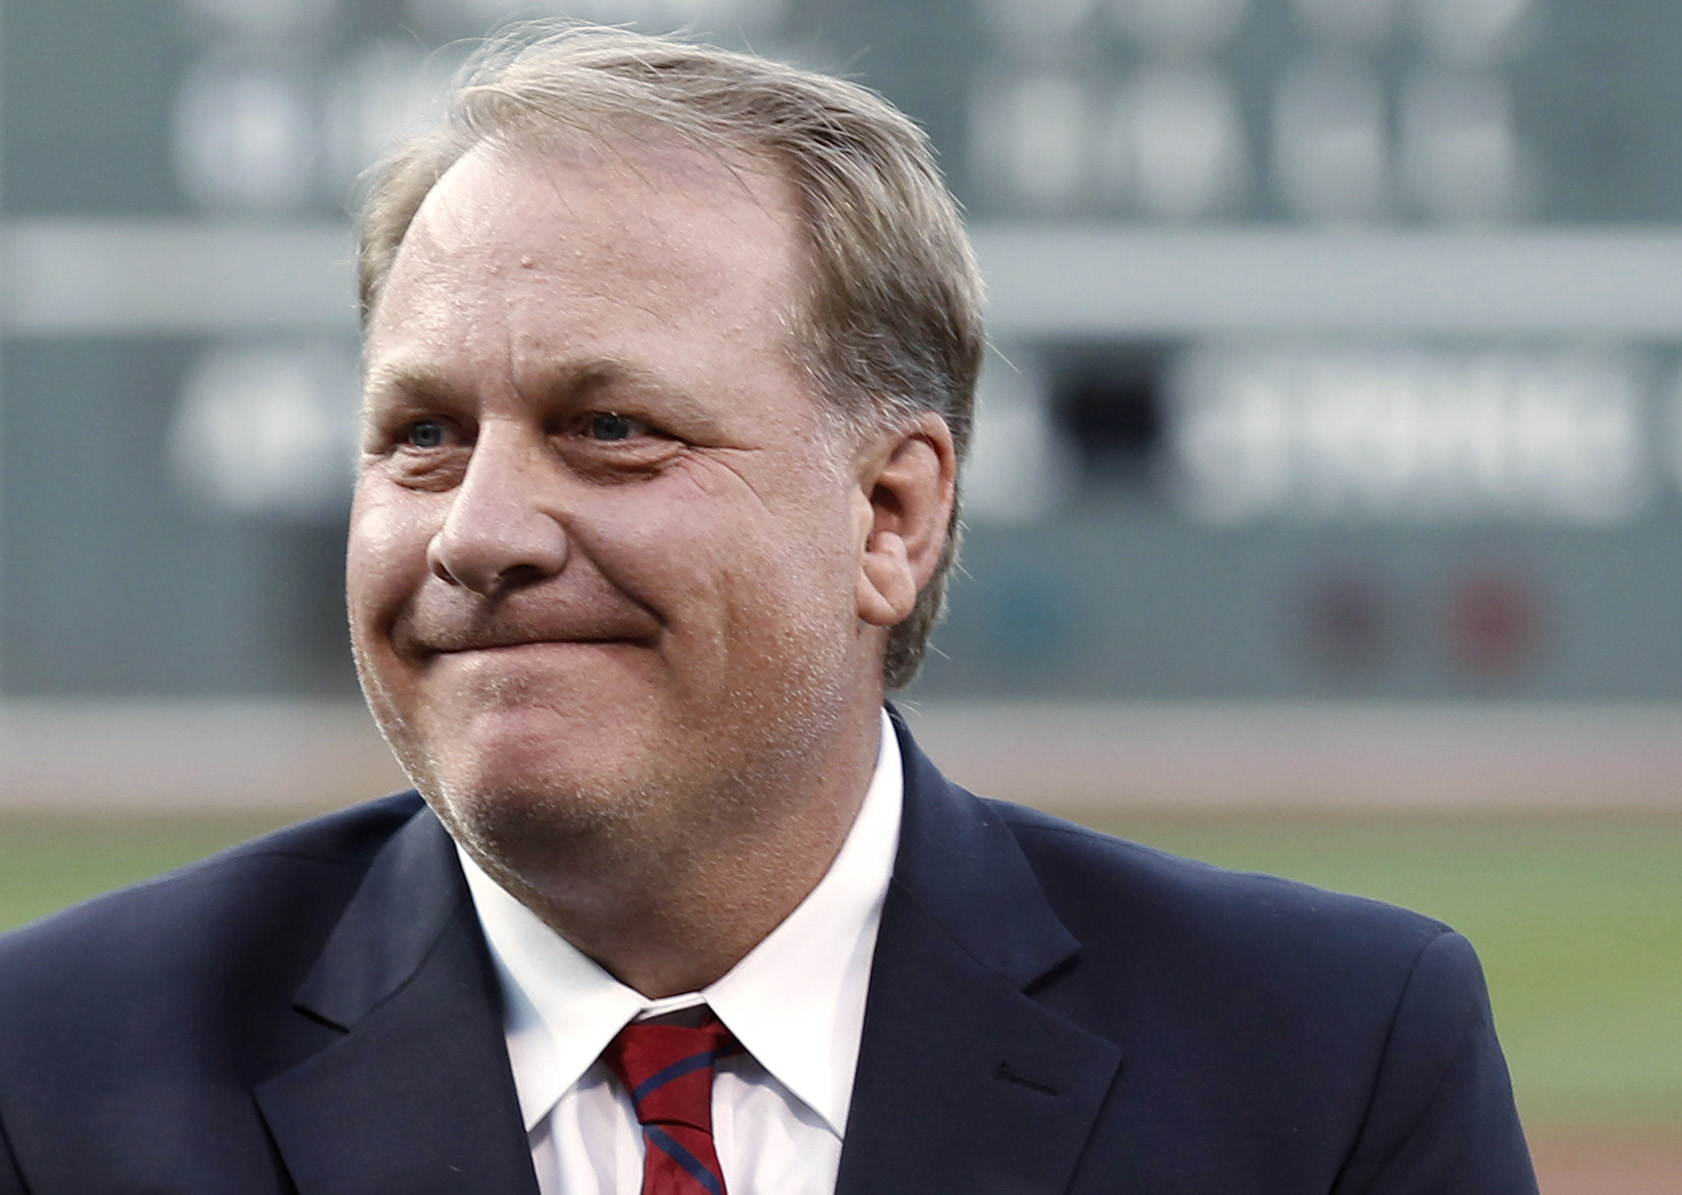 FILE In this Aug. 3, 2012, file photo, former Boston Red Sox pitcher Curt Schilling reacts after being introduced as a new member of the Boston Red Sox Hall of Fame, at Fenway Park in Boston. ESPN says commentator Schilling won't appear on the air for the